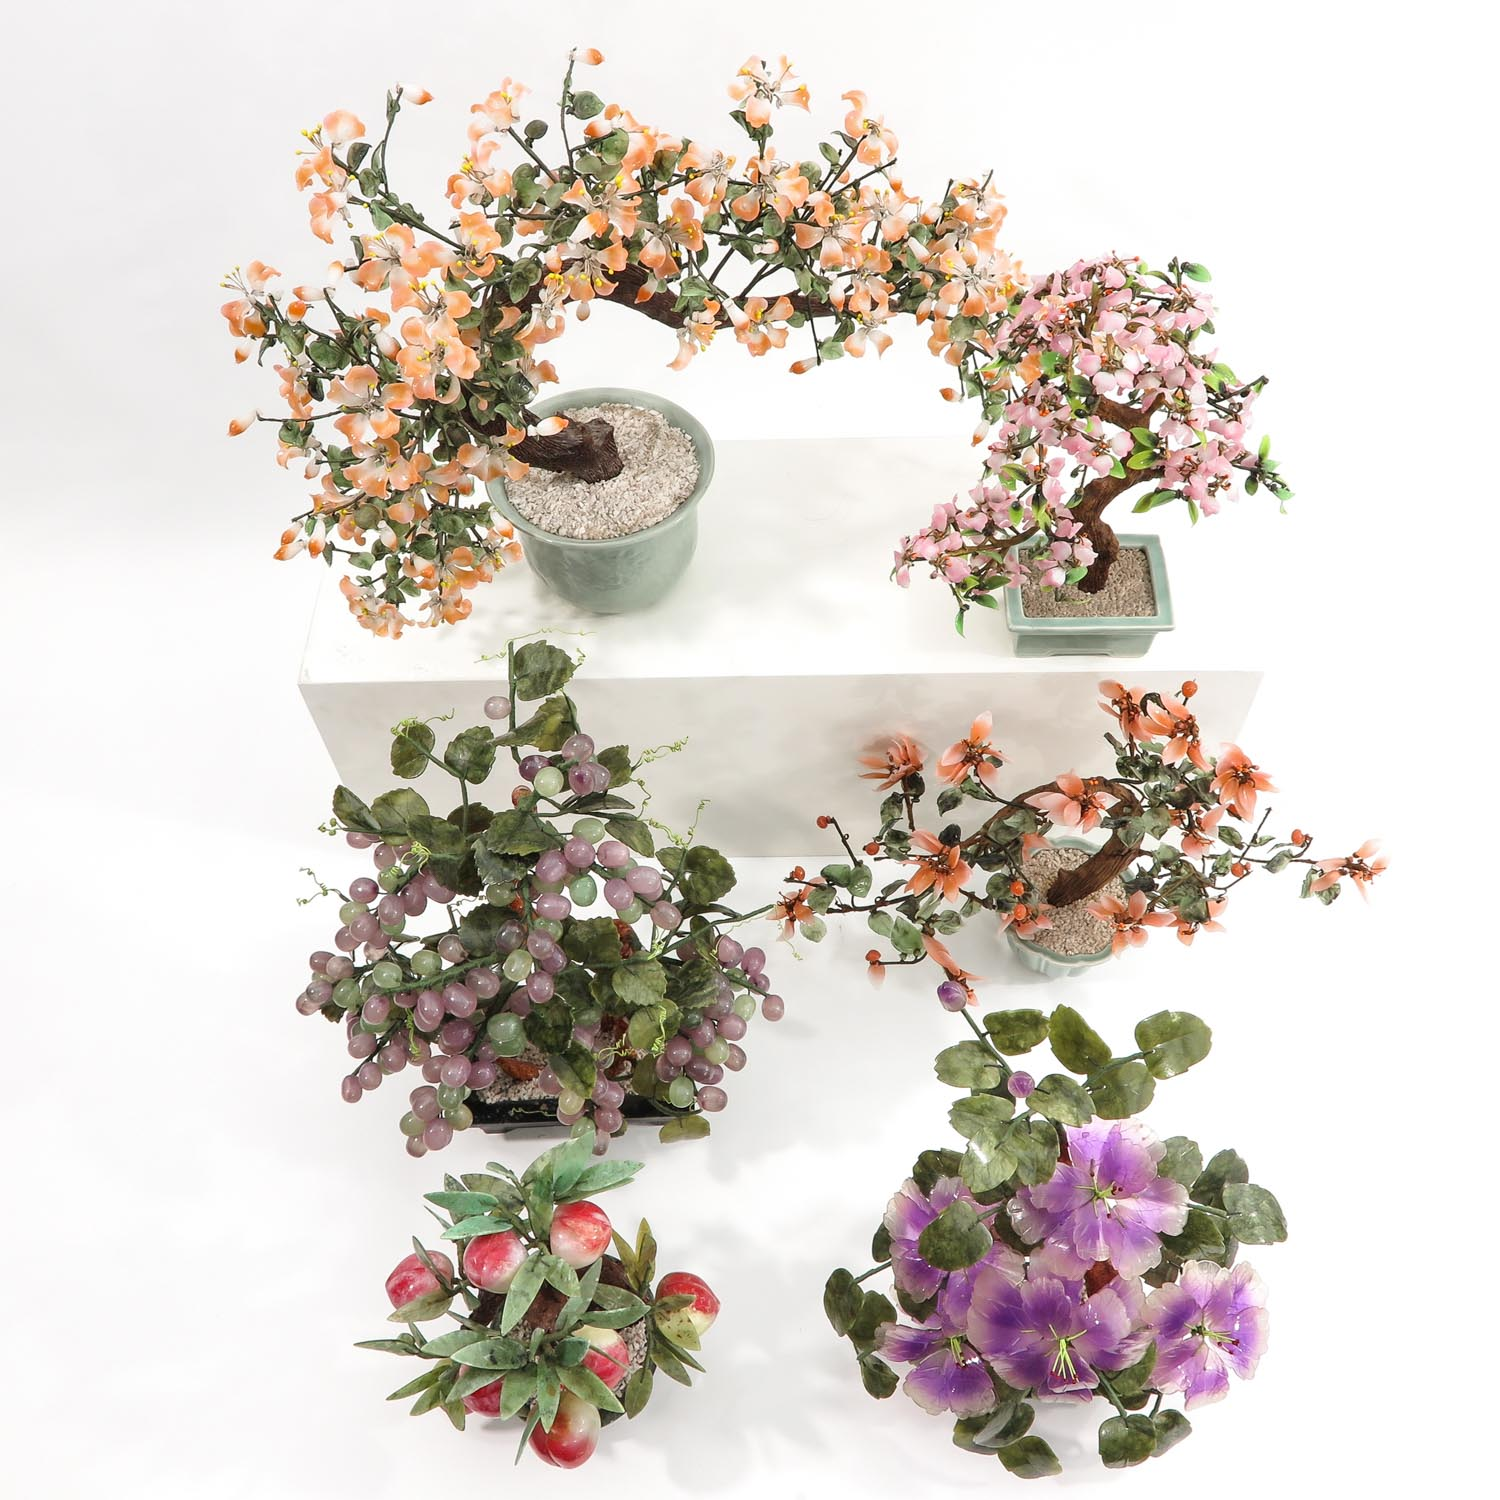 A Collection of Floral Arrangements - Image 5 of 10